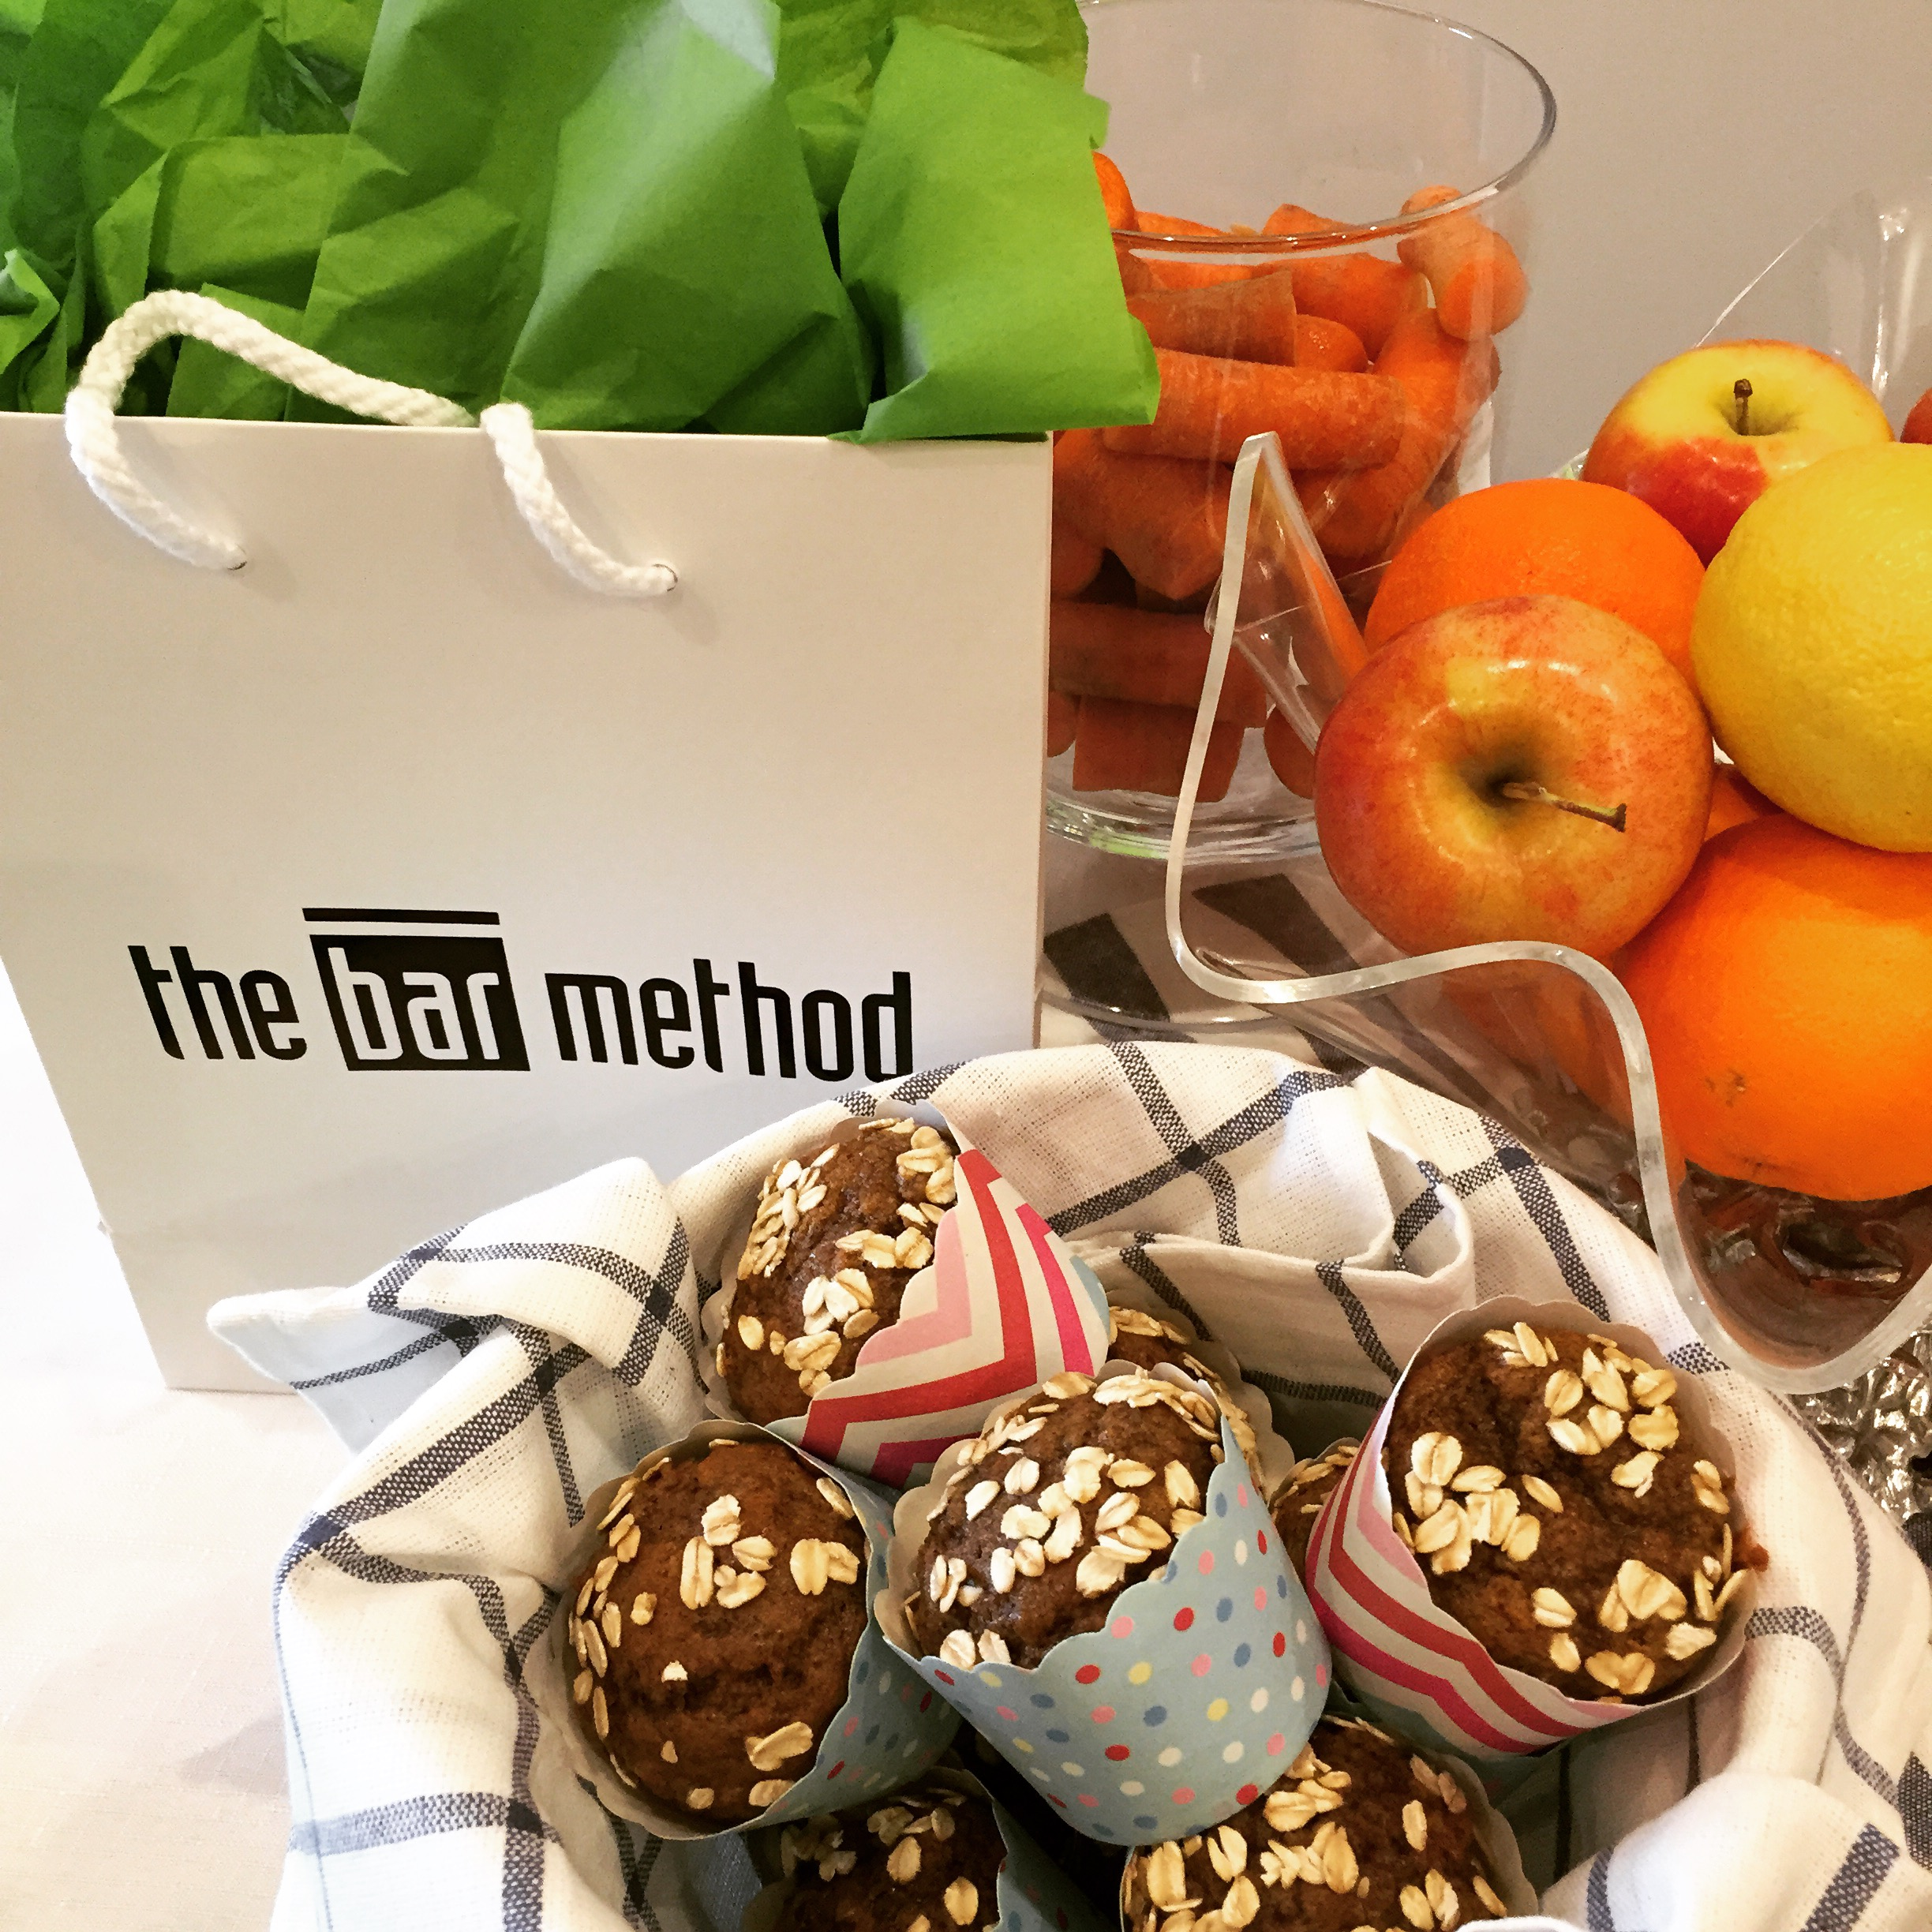 This March I partnered with  The Bar Method  of Fresno to offer a Juicing Demonstration.